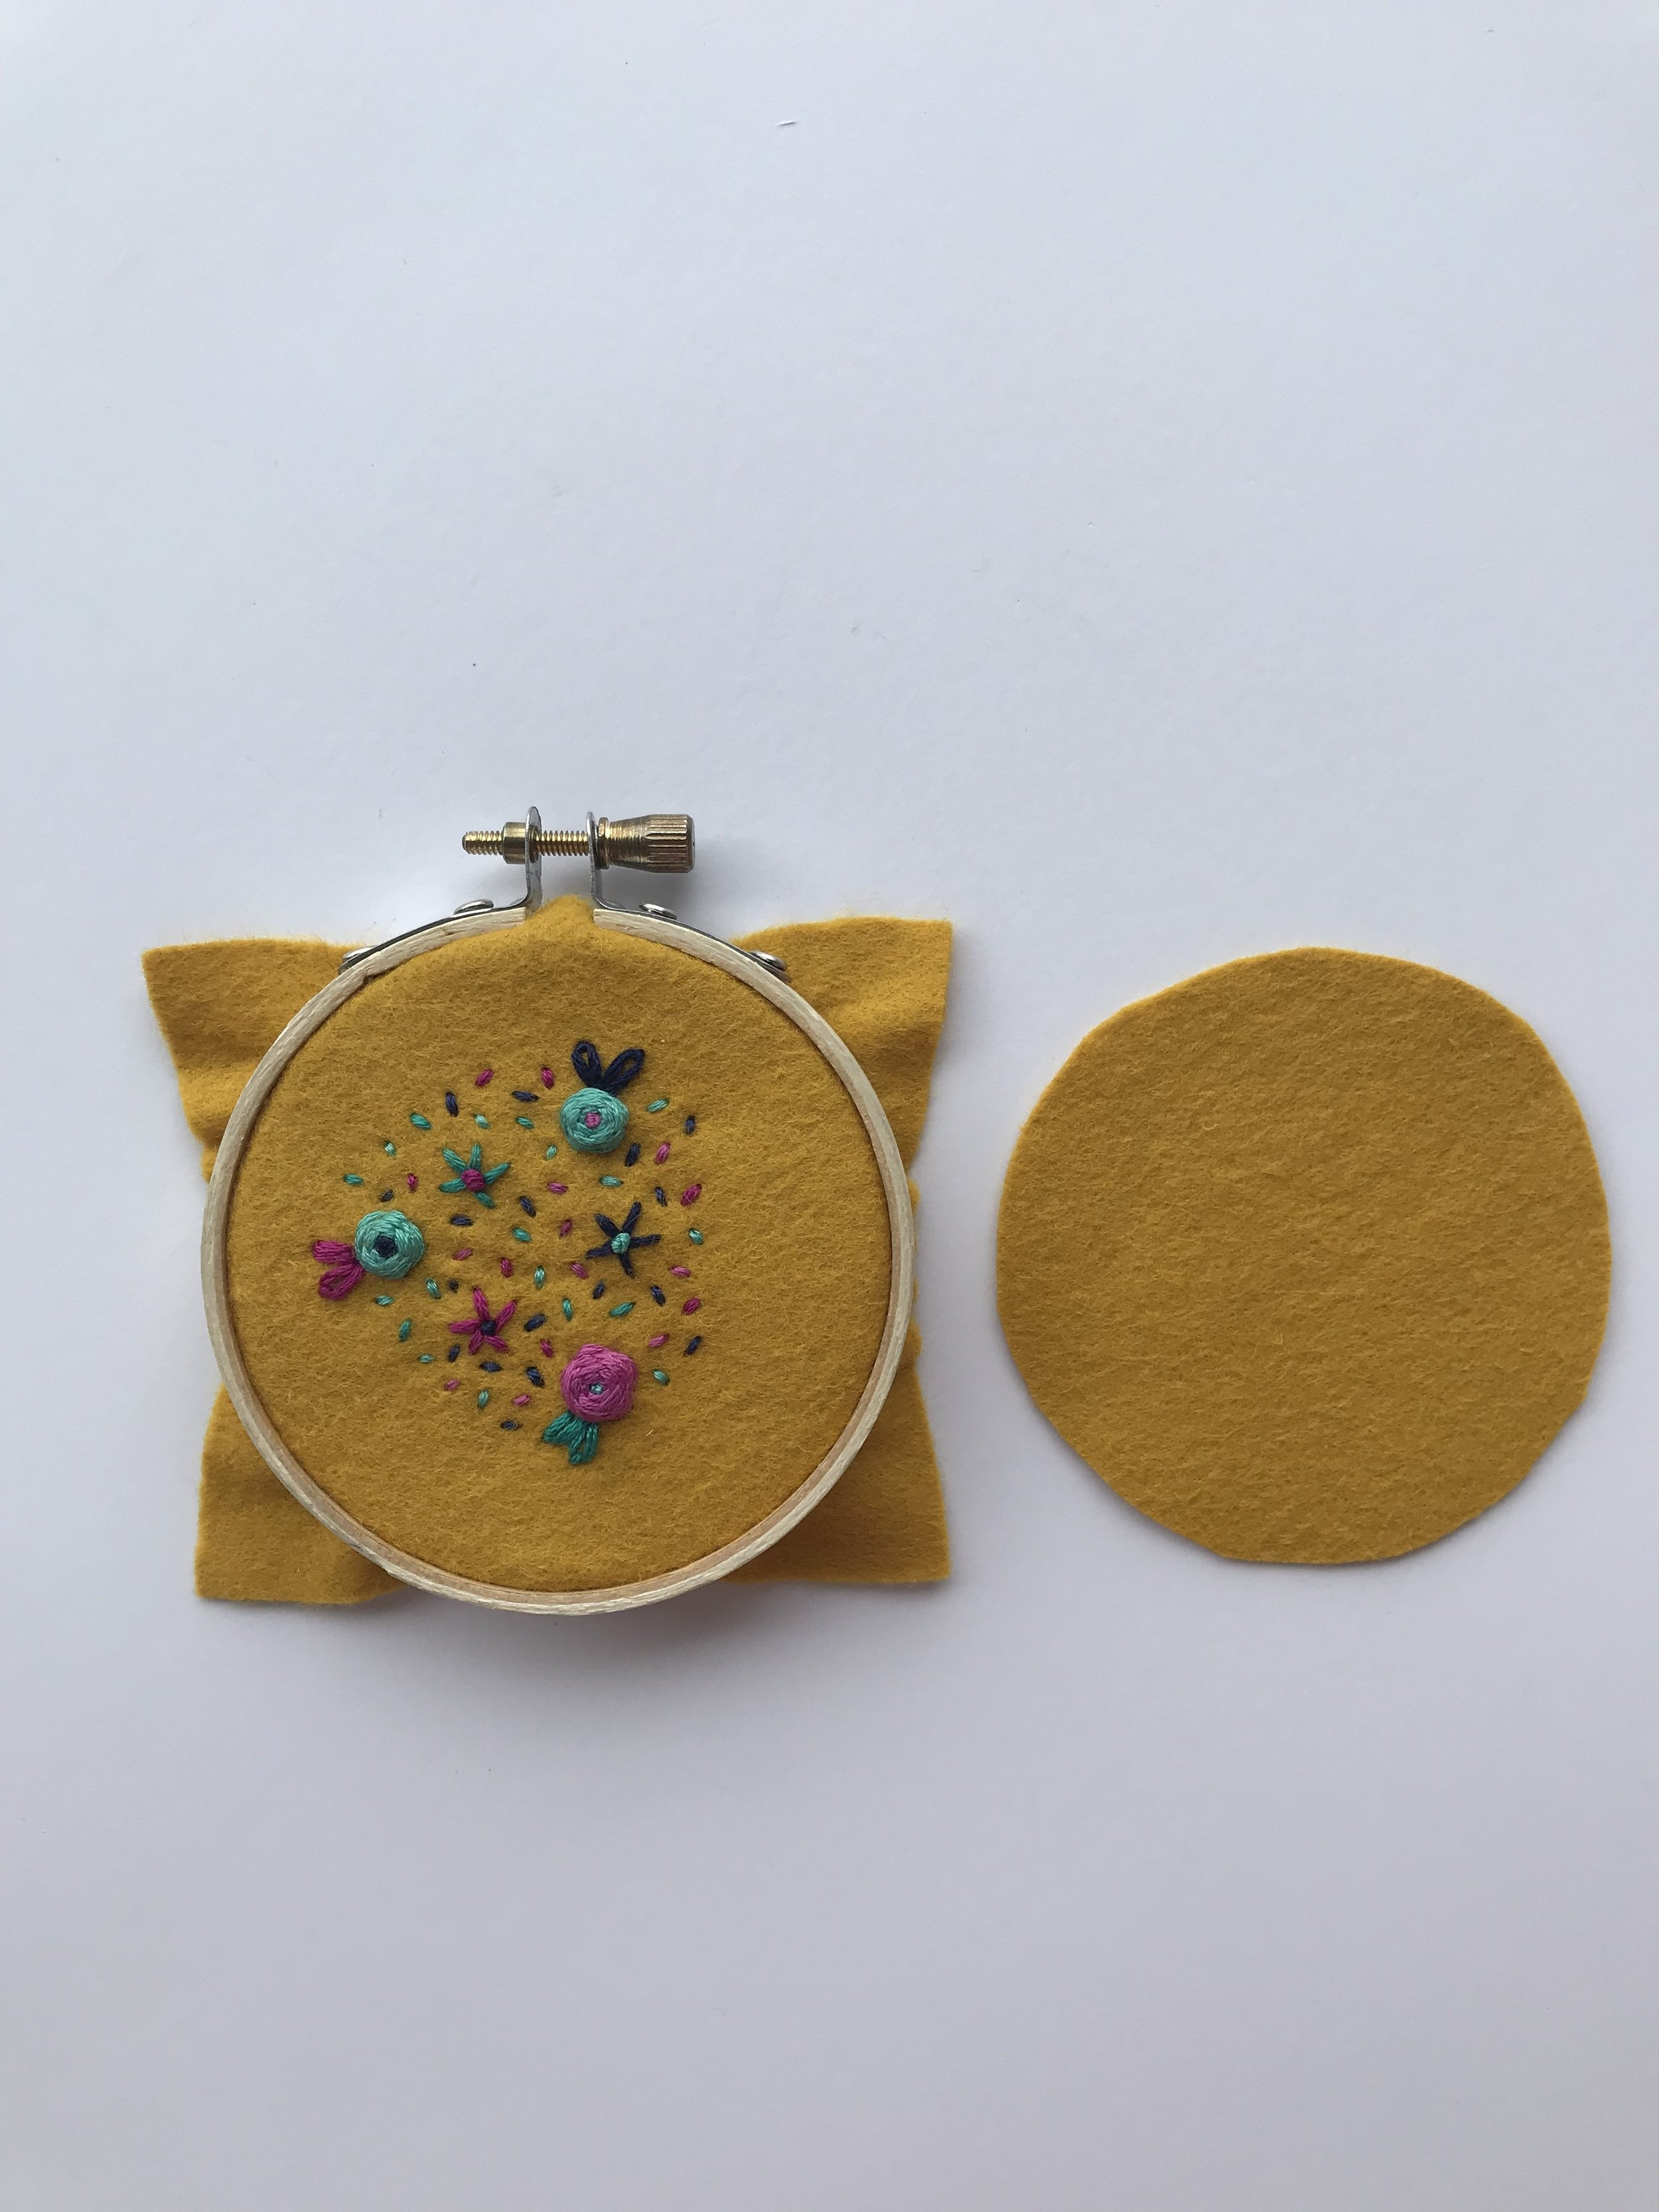 Once your design is complete, remove the embroidered piece of fabric from the hoop. Place the second piece of felt behind the embroidered felt.